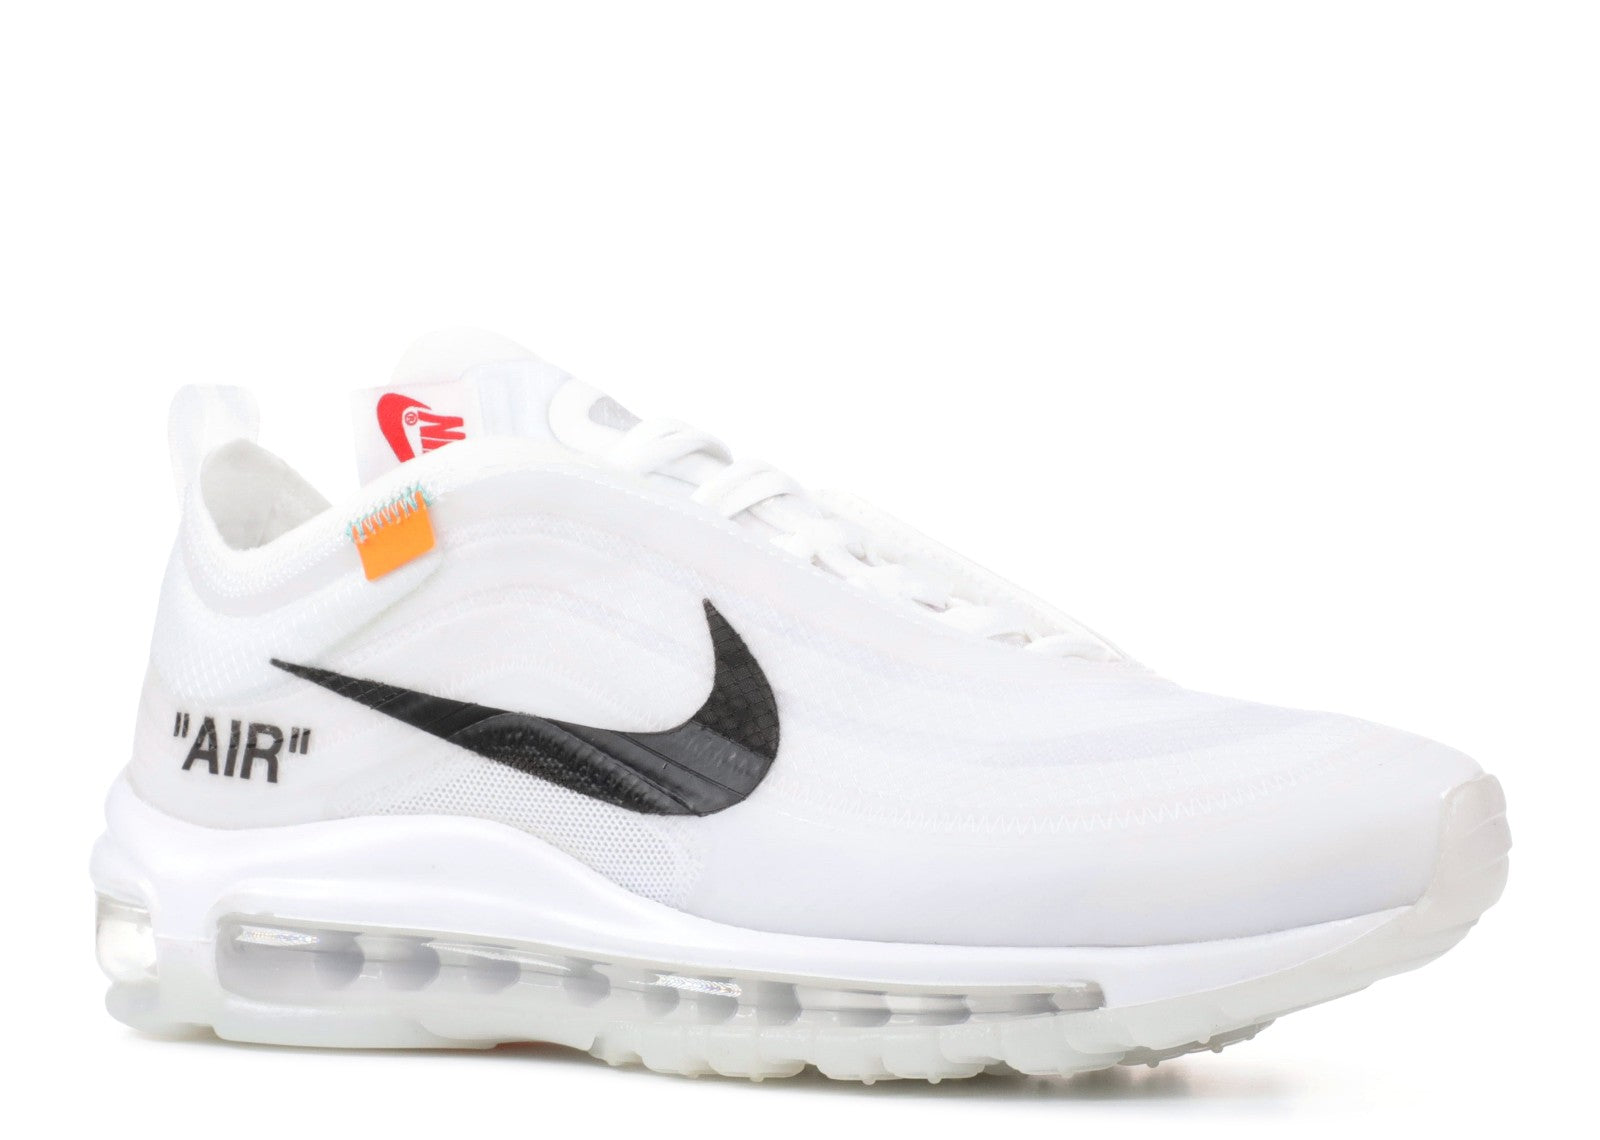 Off-White X Nike Air Max 97 OG 'The Ten'